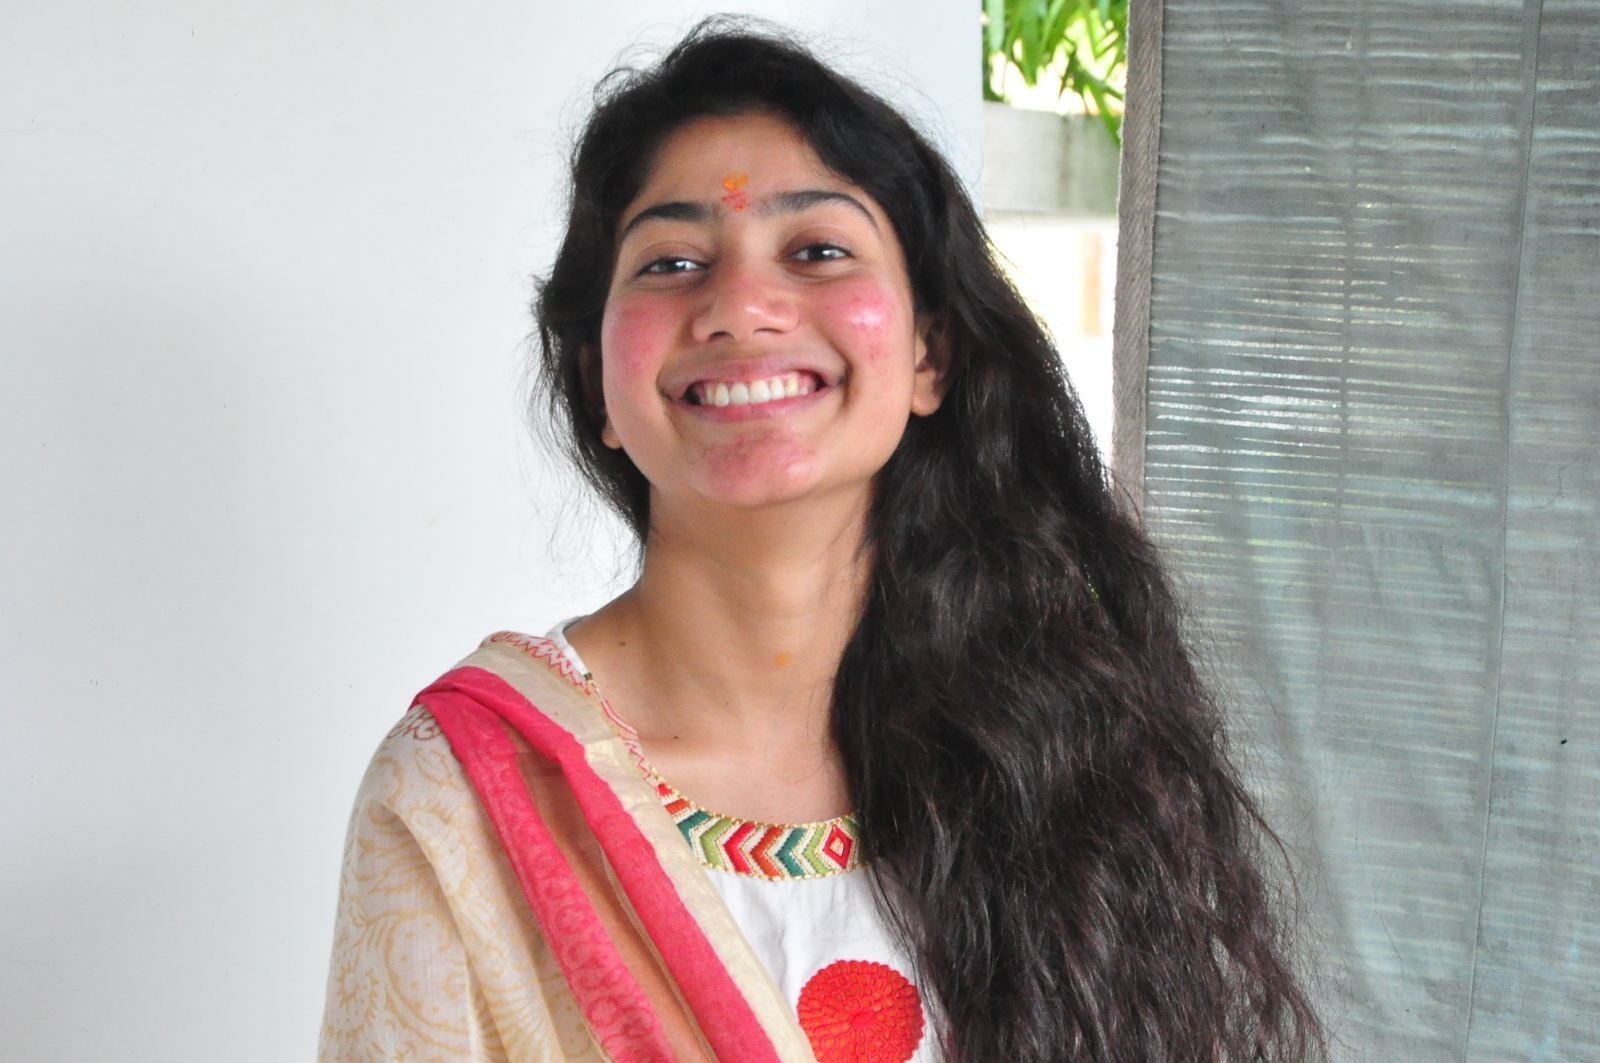 South Indian Actress Sai Pallavi Smiling Stills At Movie Launch In White Dress